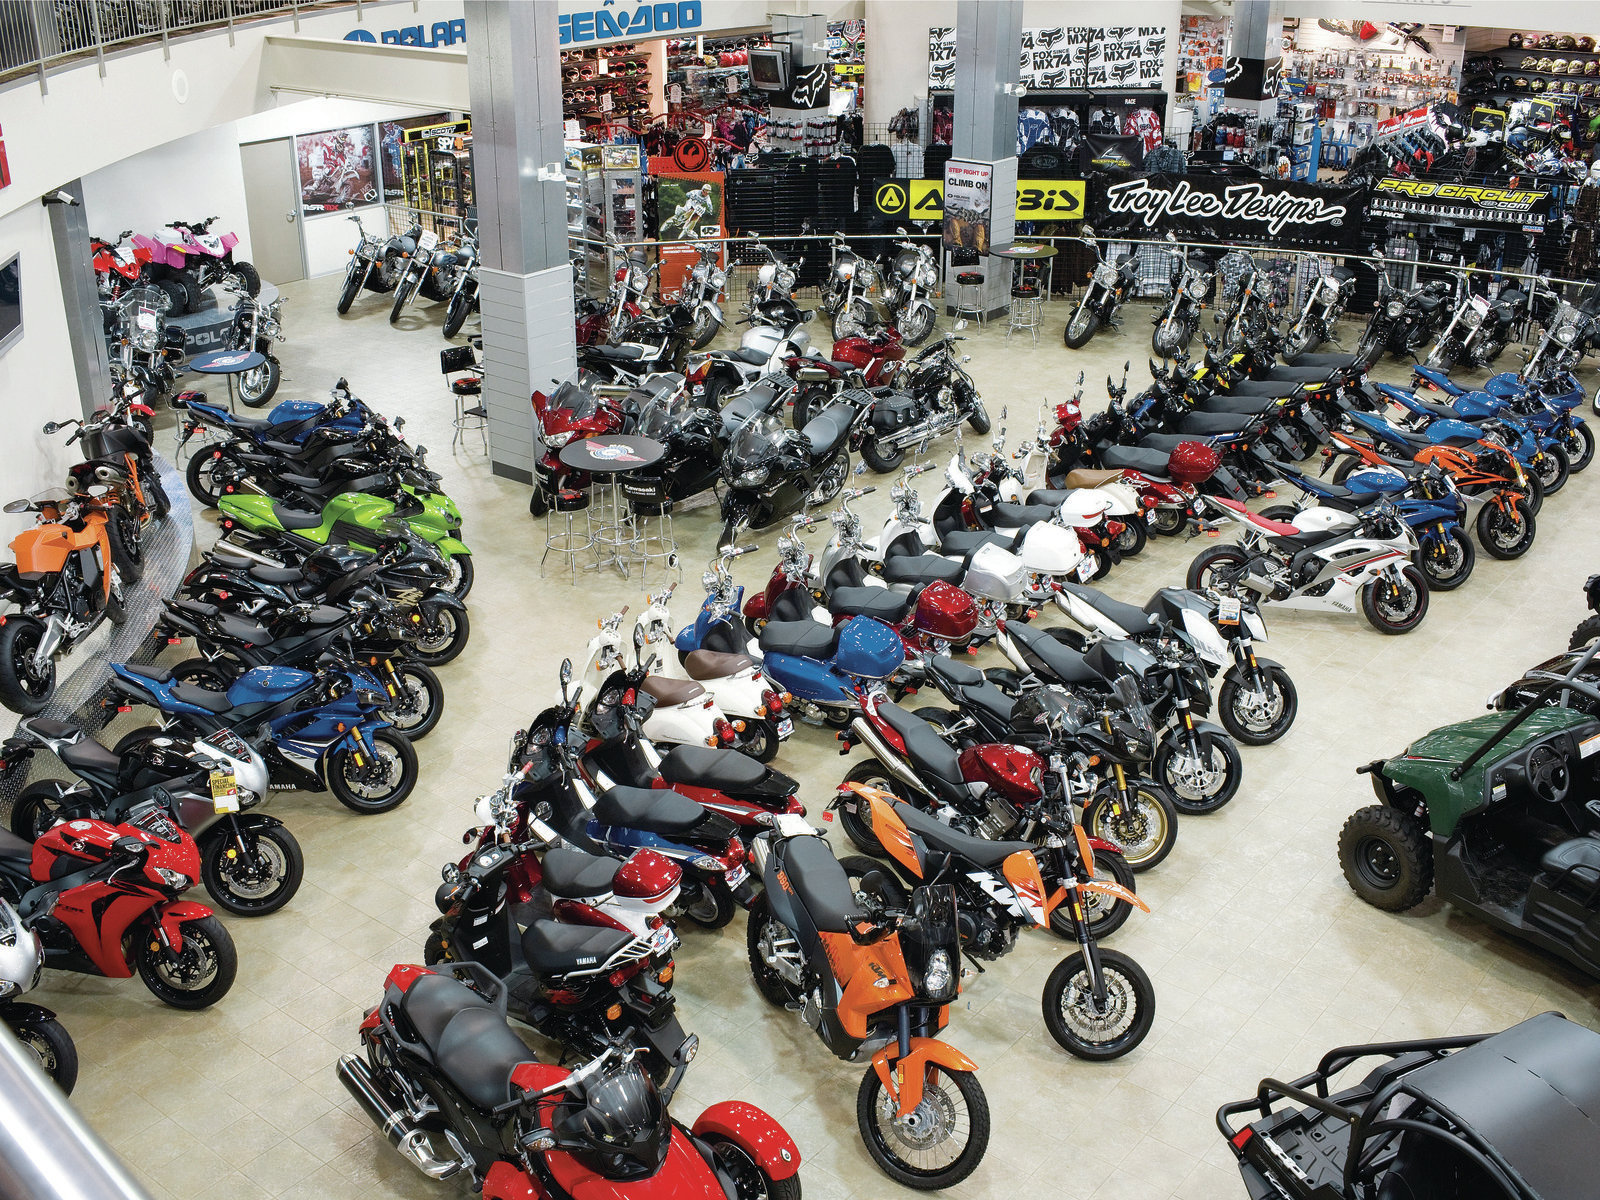 Kawasaki Motorbike Dealer Near Me